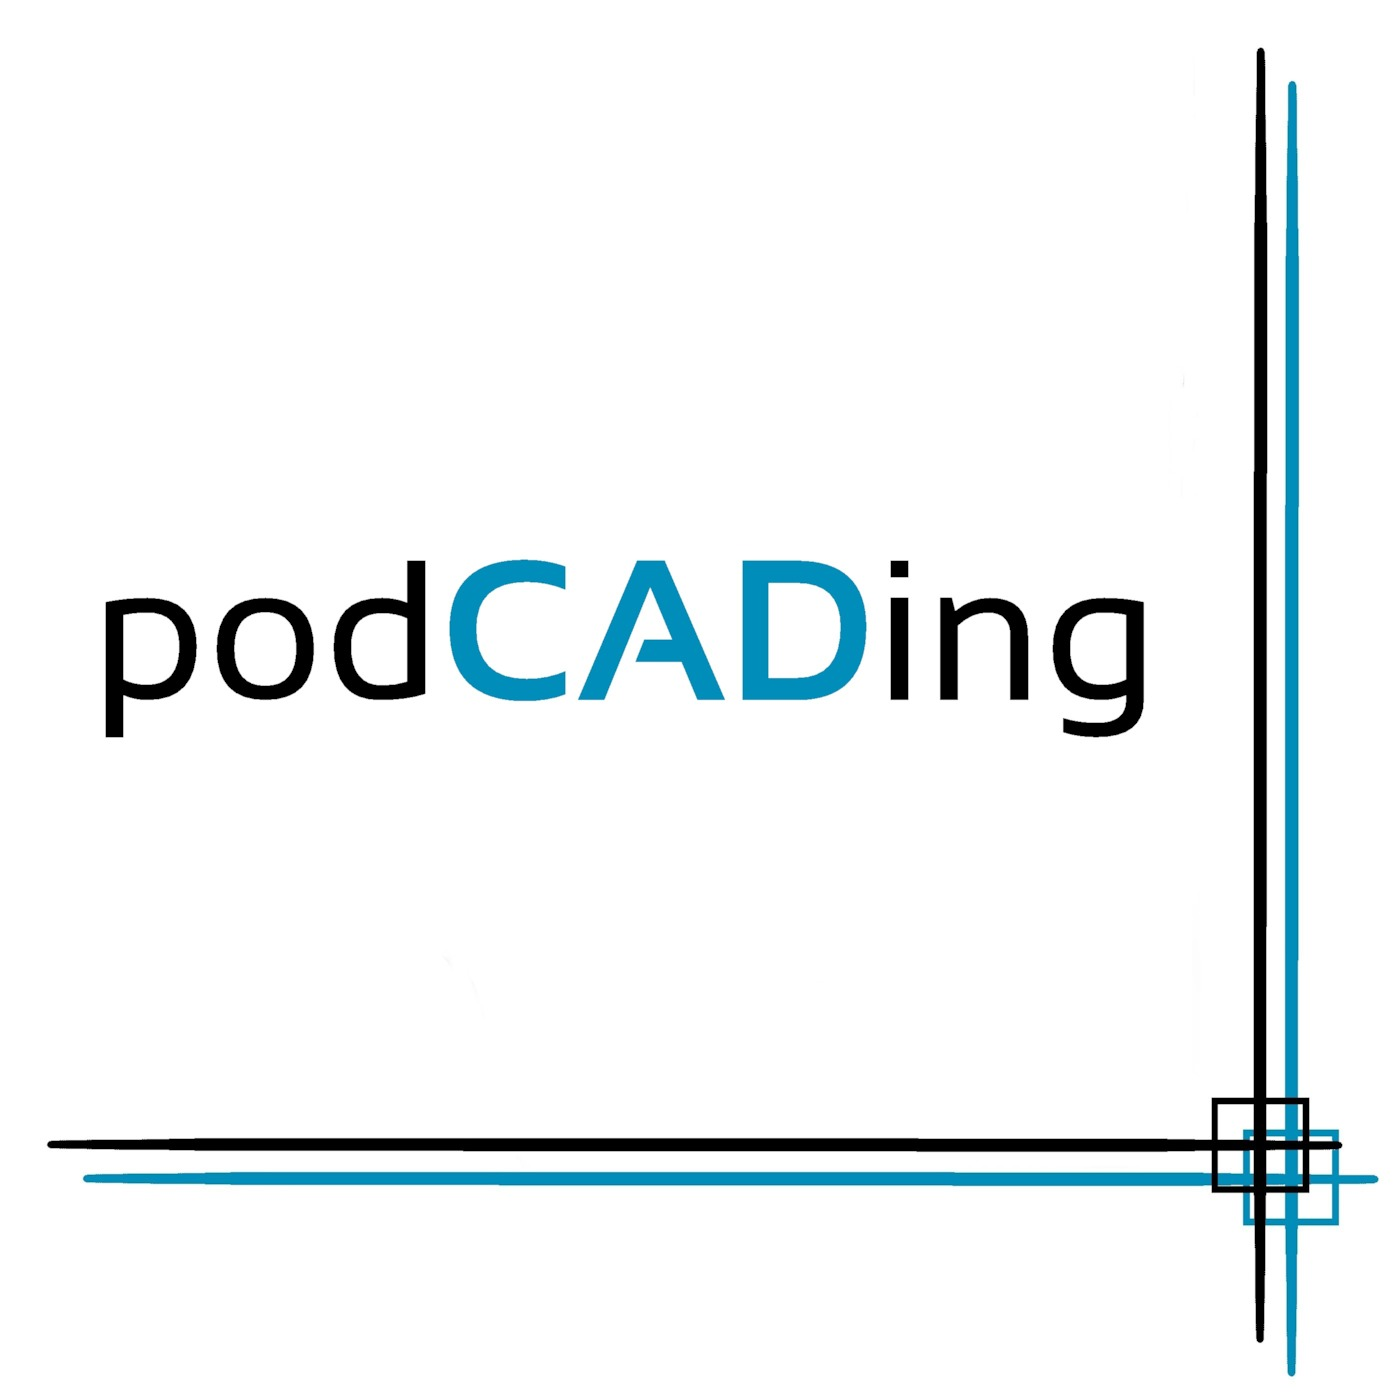 Apple Podcasts : Qatar : Training Podcast Charts - Chartable